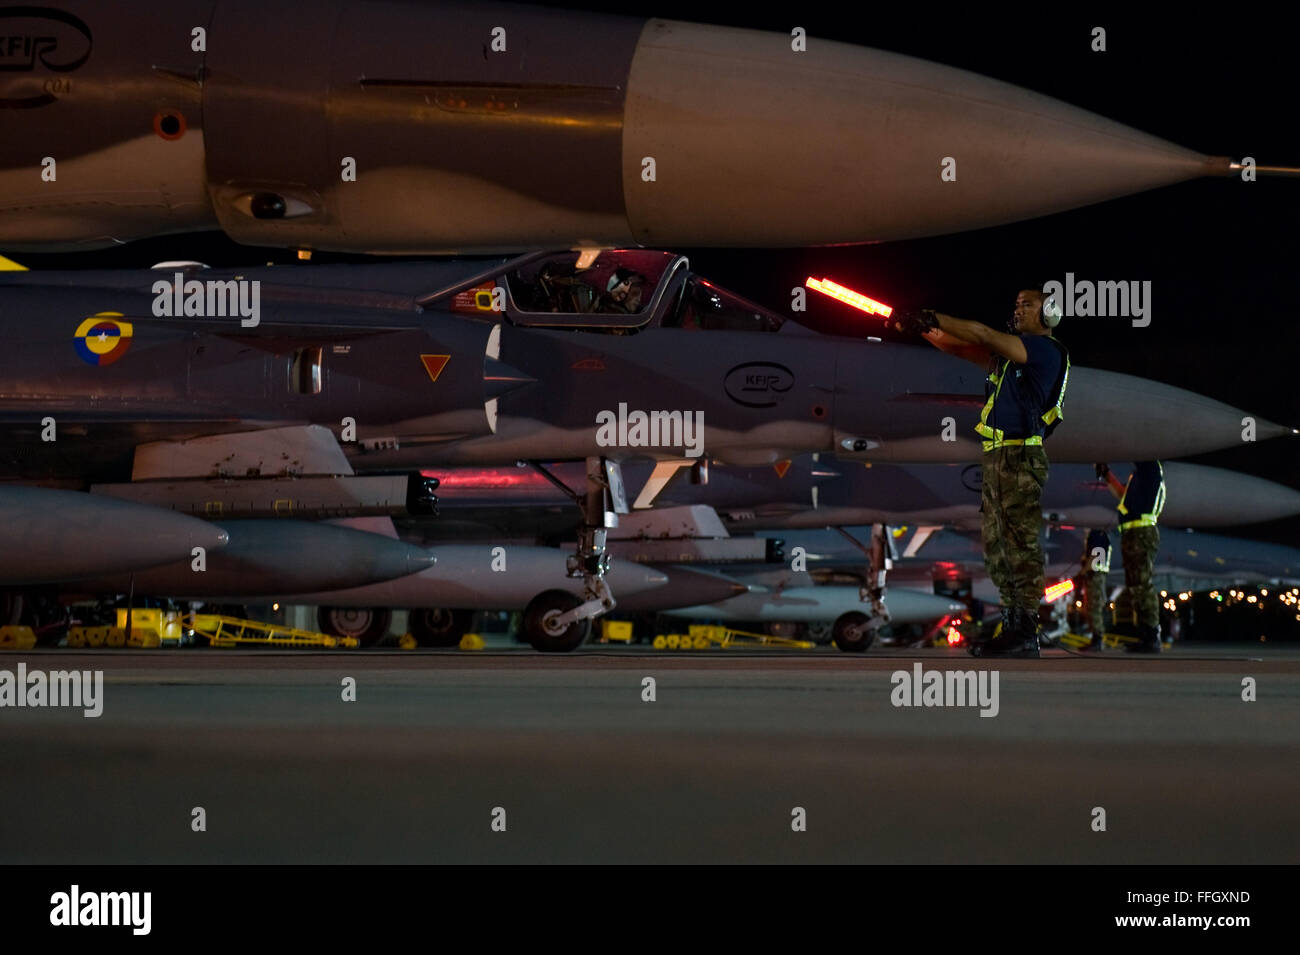 Colombian air force crew chiefs marshal out Colombian F-21 Kfirs onto the flightline during Red Flag 12-4 at Nellis - Stock Image